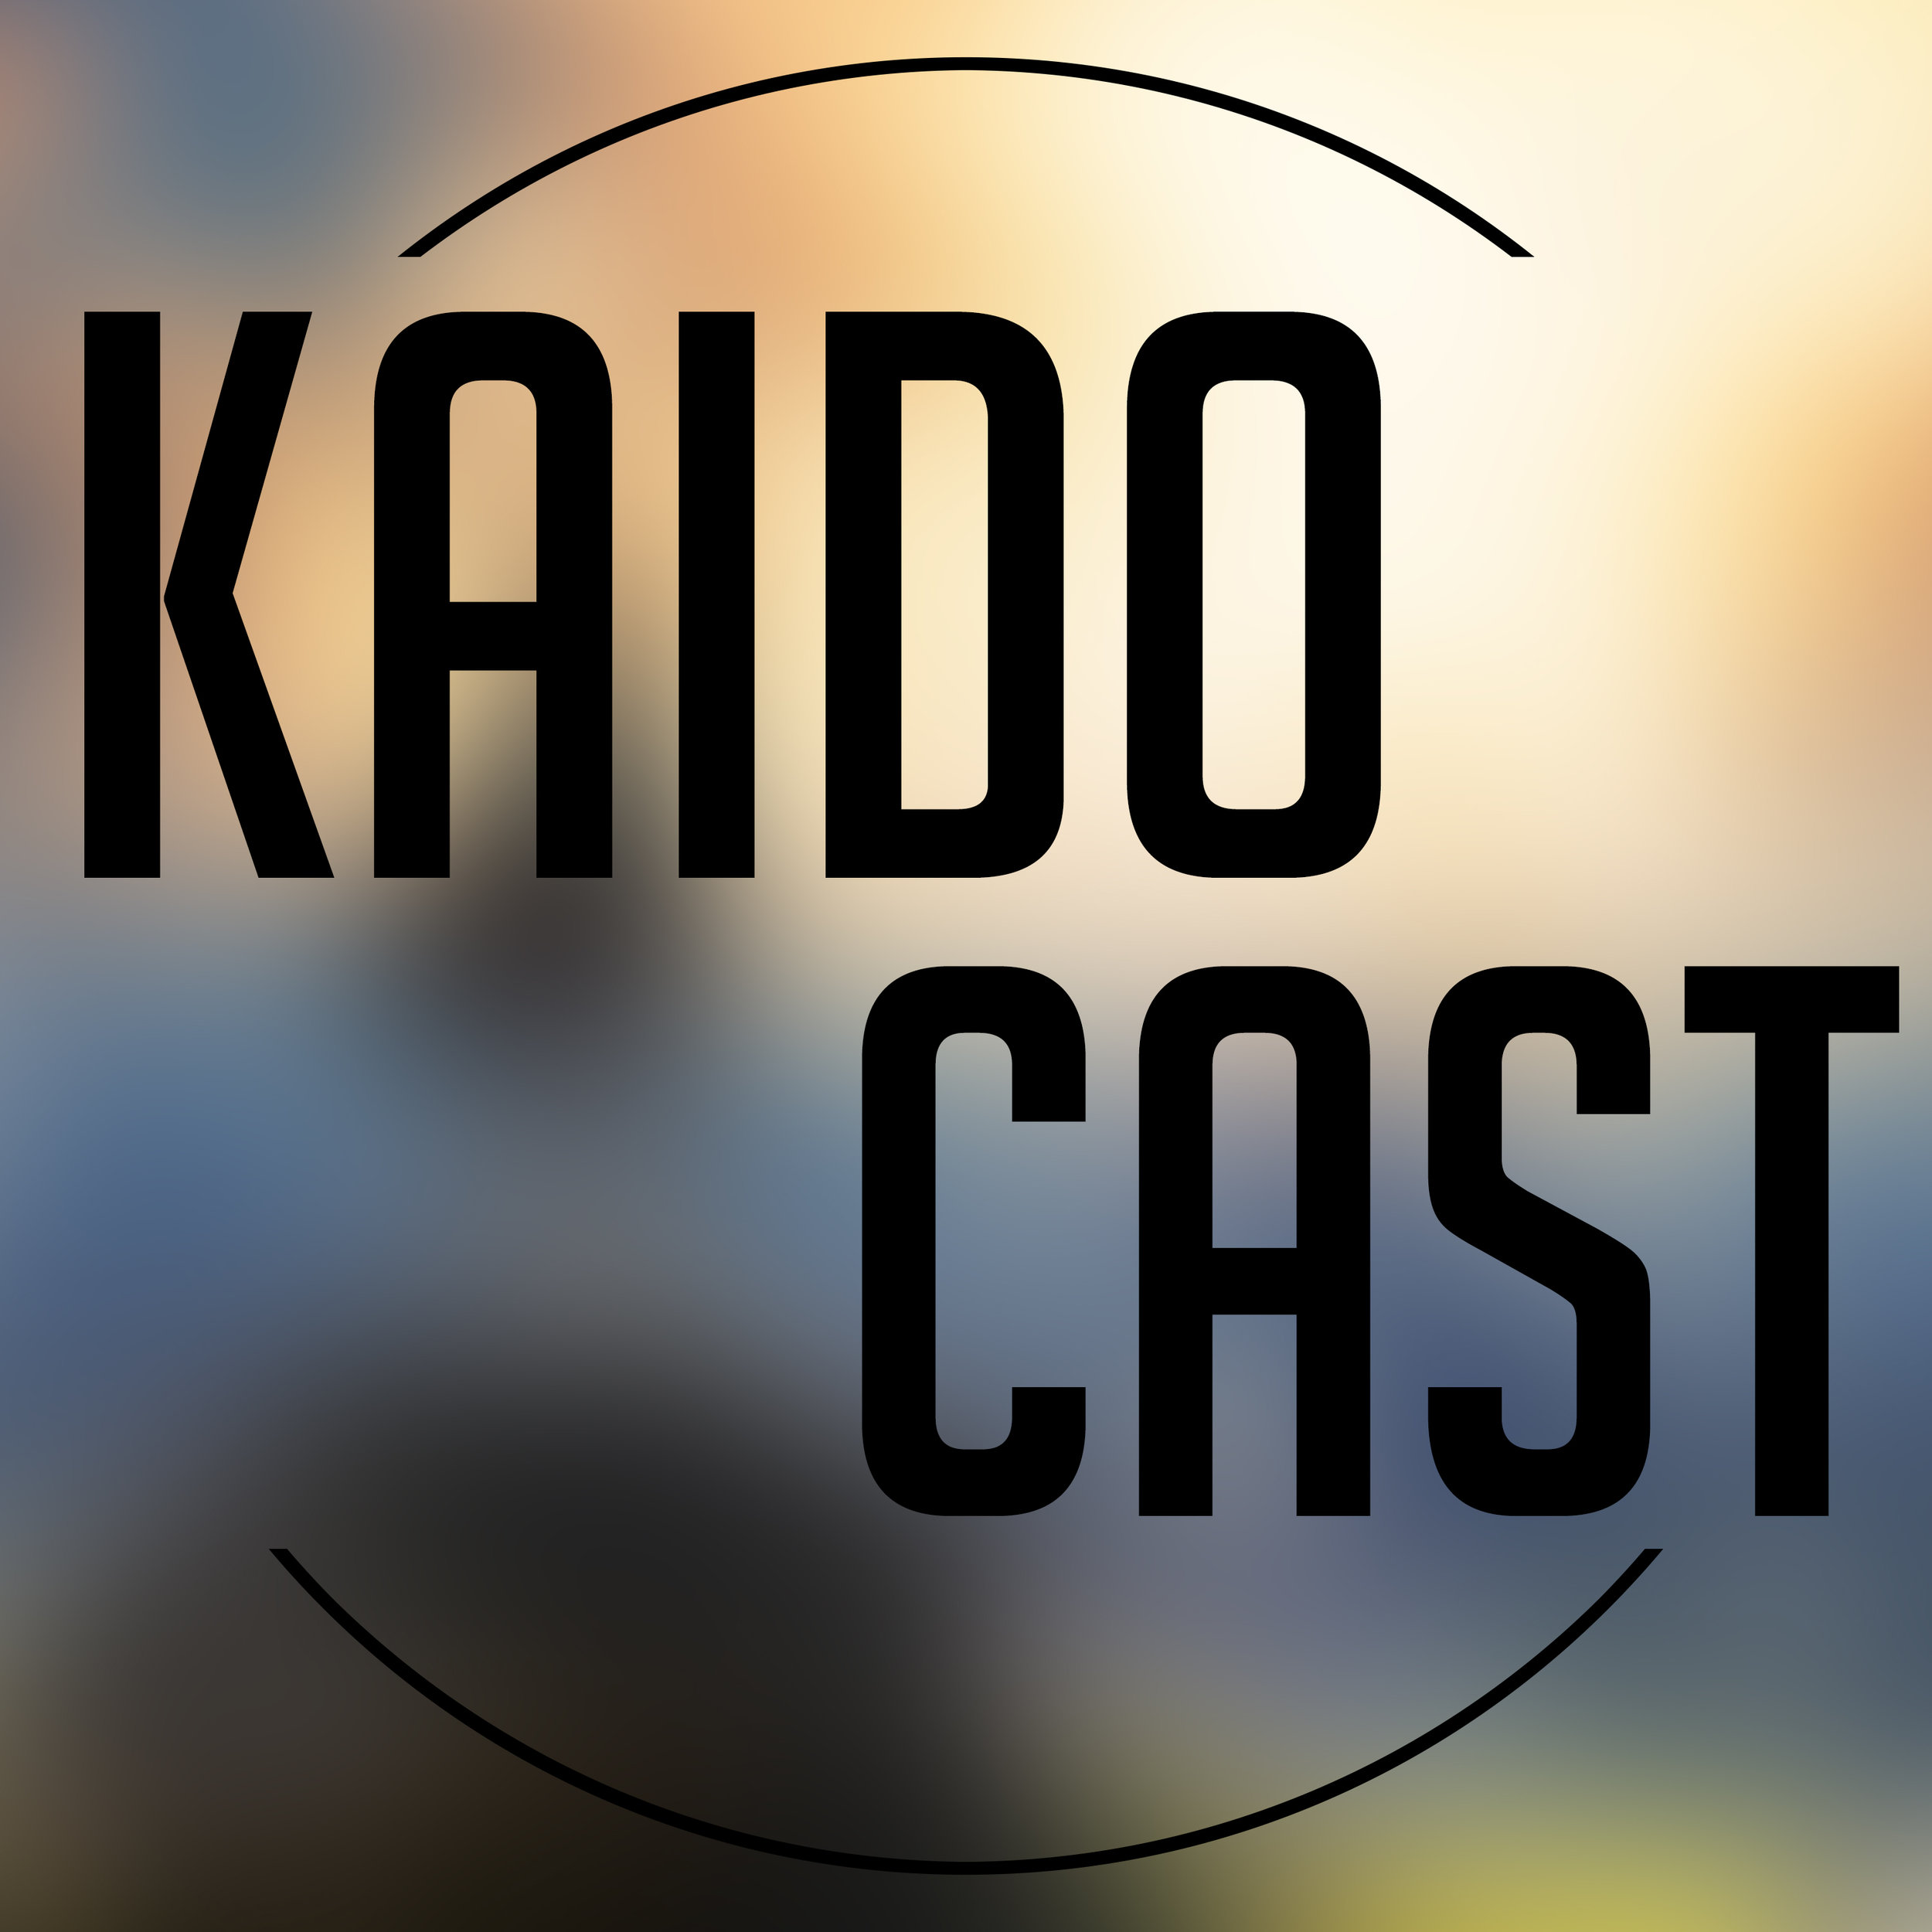 KAIDO Cast 02 - Sorry, I'm Only Half the Best Man - We made it through E3, and it is time for us to spread the knowledge of whats new. Zac discusses his Switch from Victory, Luke admits defeat, and Dave is probably dancing or something... Oh yeah, did I mention it's Tuesday?